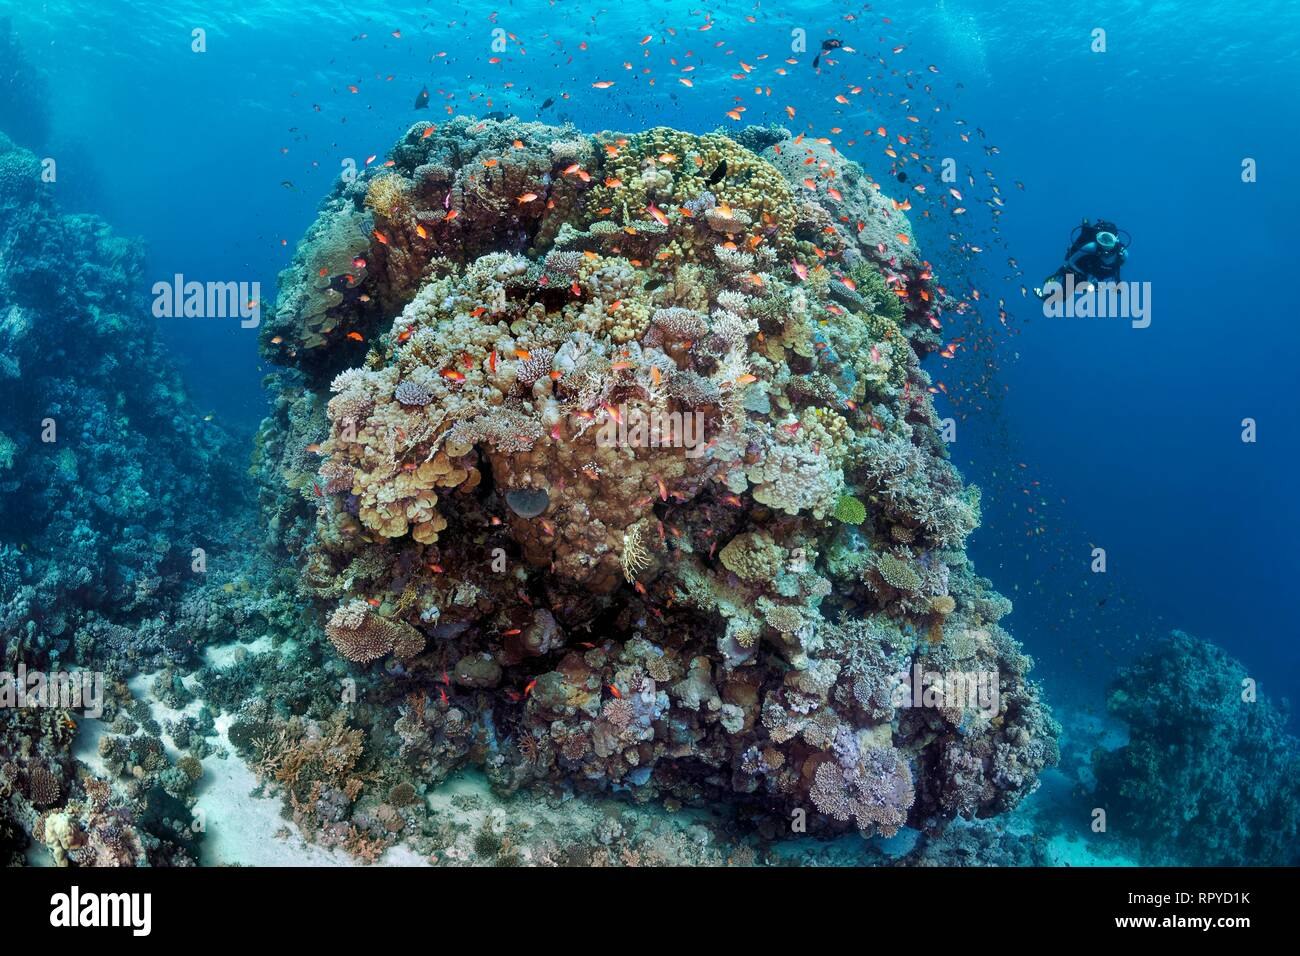 Diver, huge coral block from different stony corals (Scleractinia), swarm Anthias (Anthiinae) Red Sea, Egypt - Stock Image